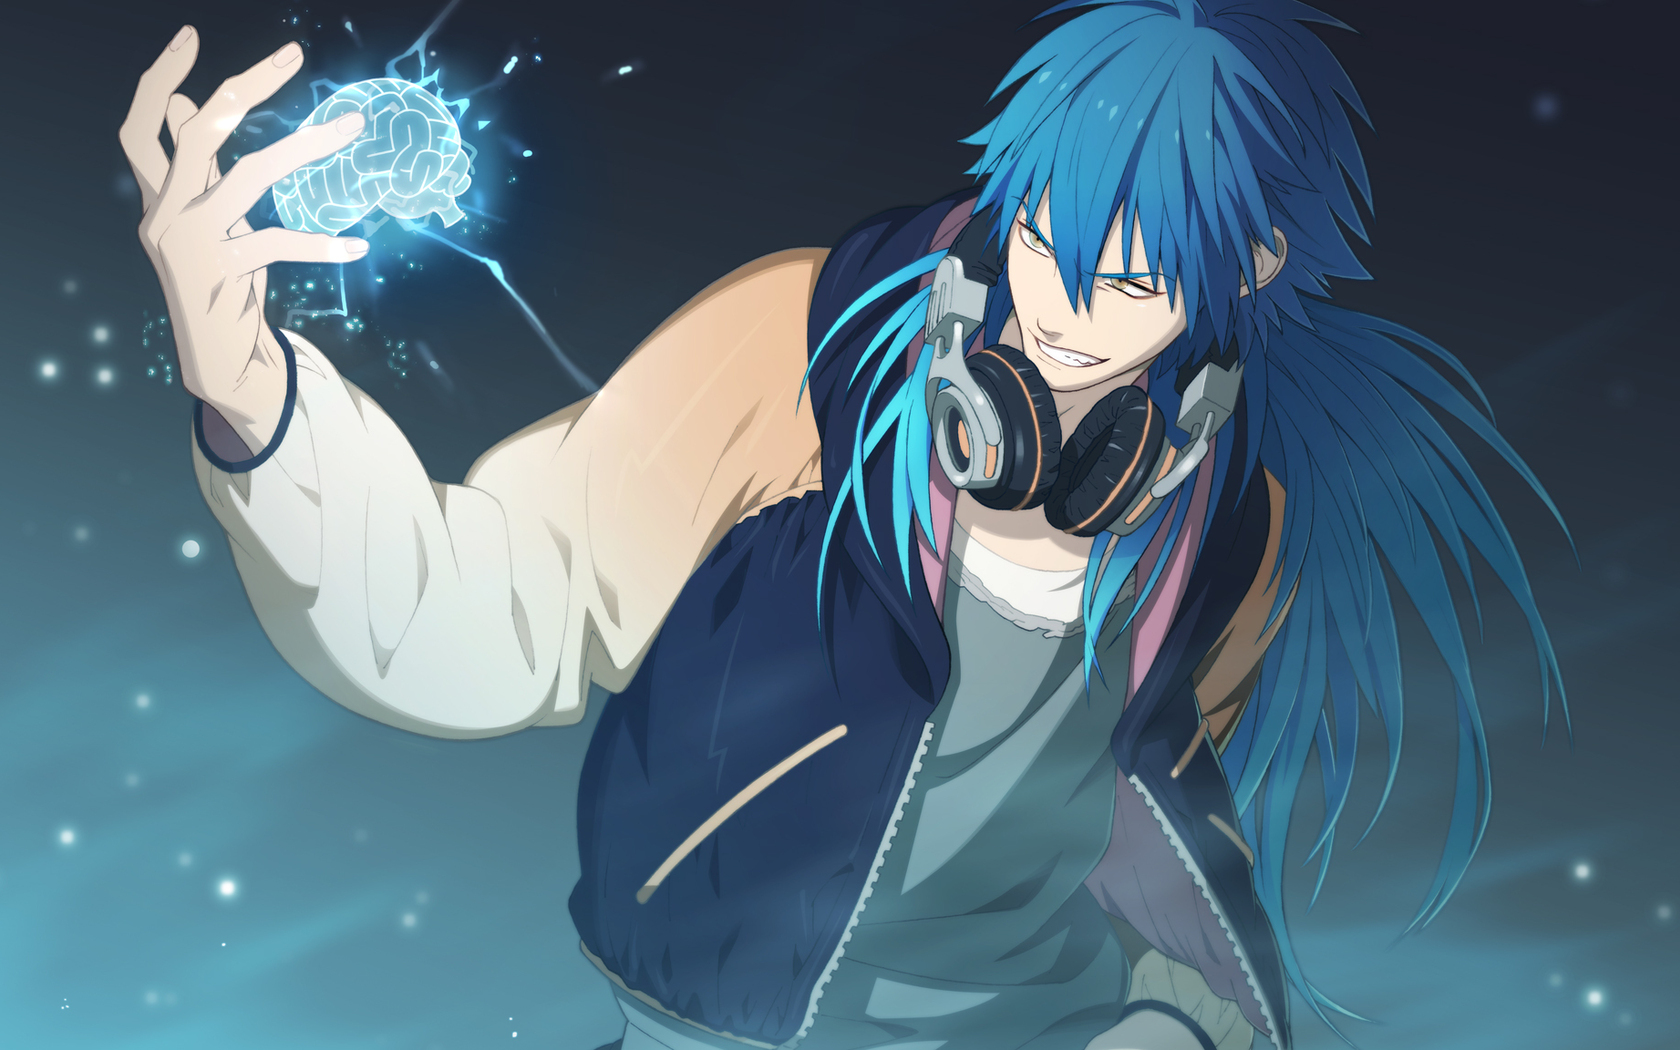 Blue Haired Anime Boy Wallpapers   1680x1050   904441 1680x1050